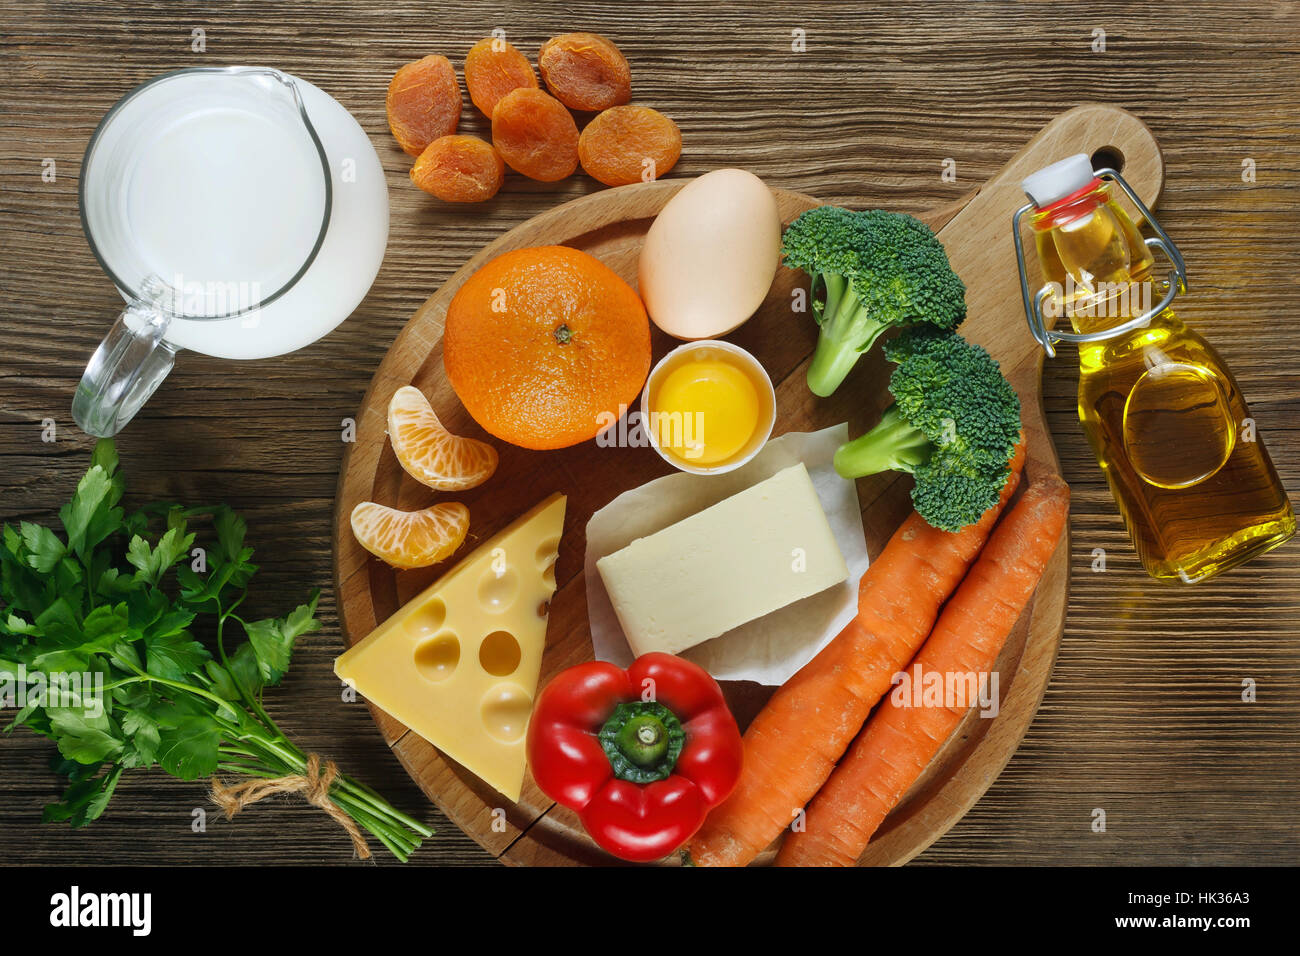 Vitamin A in food. - Stock Image